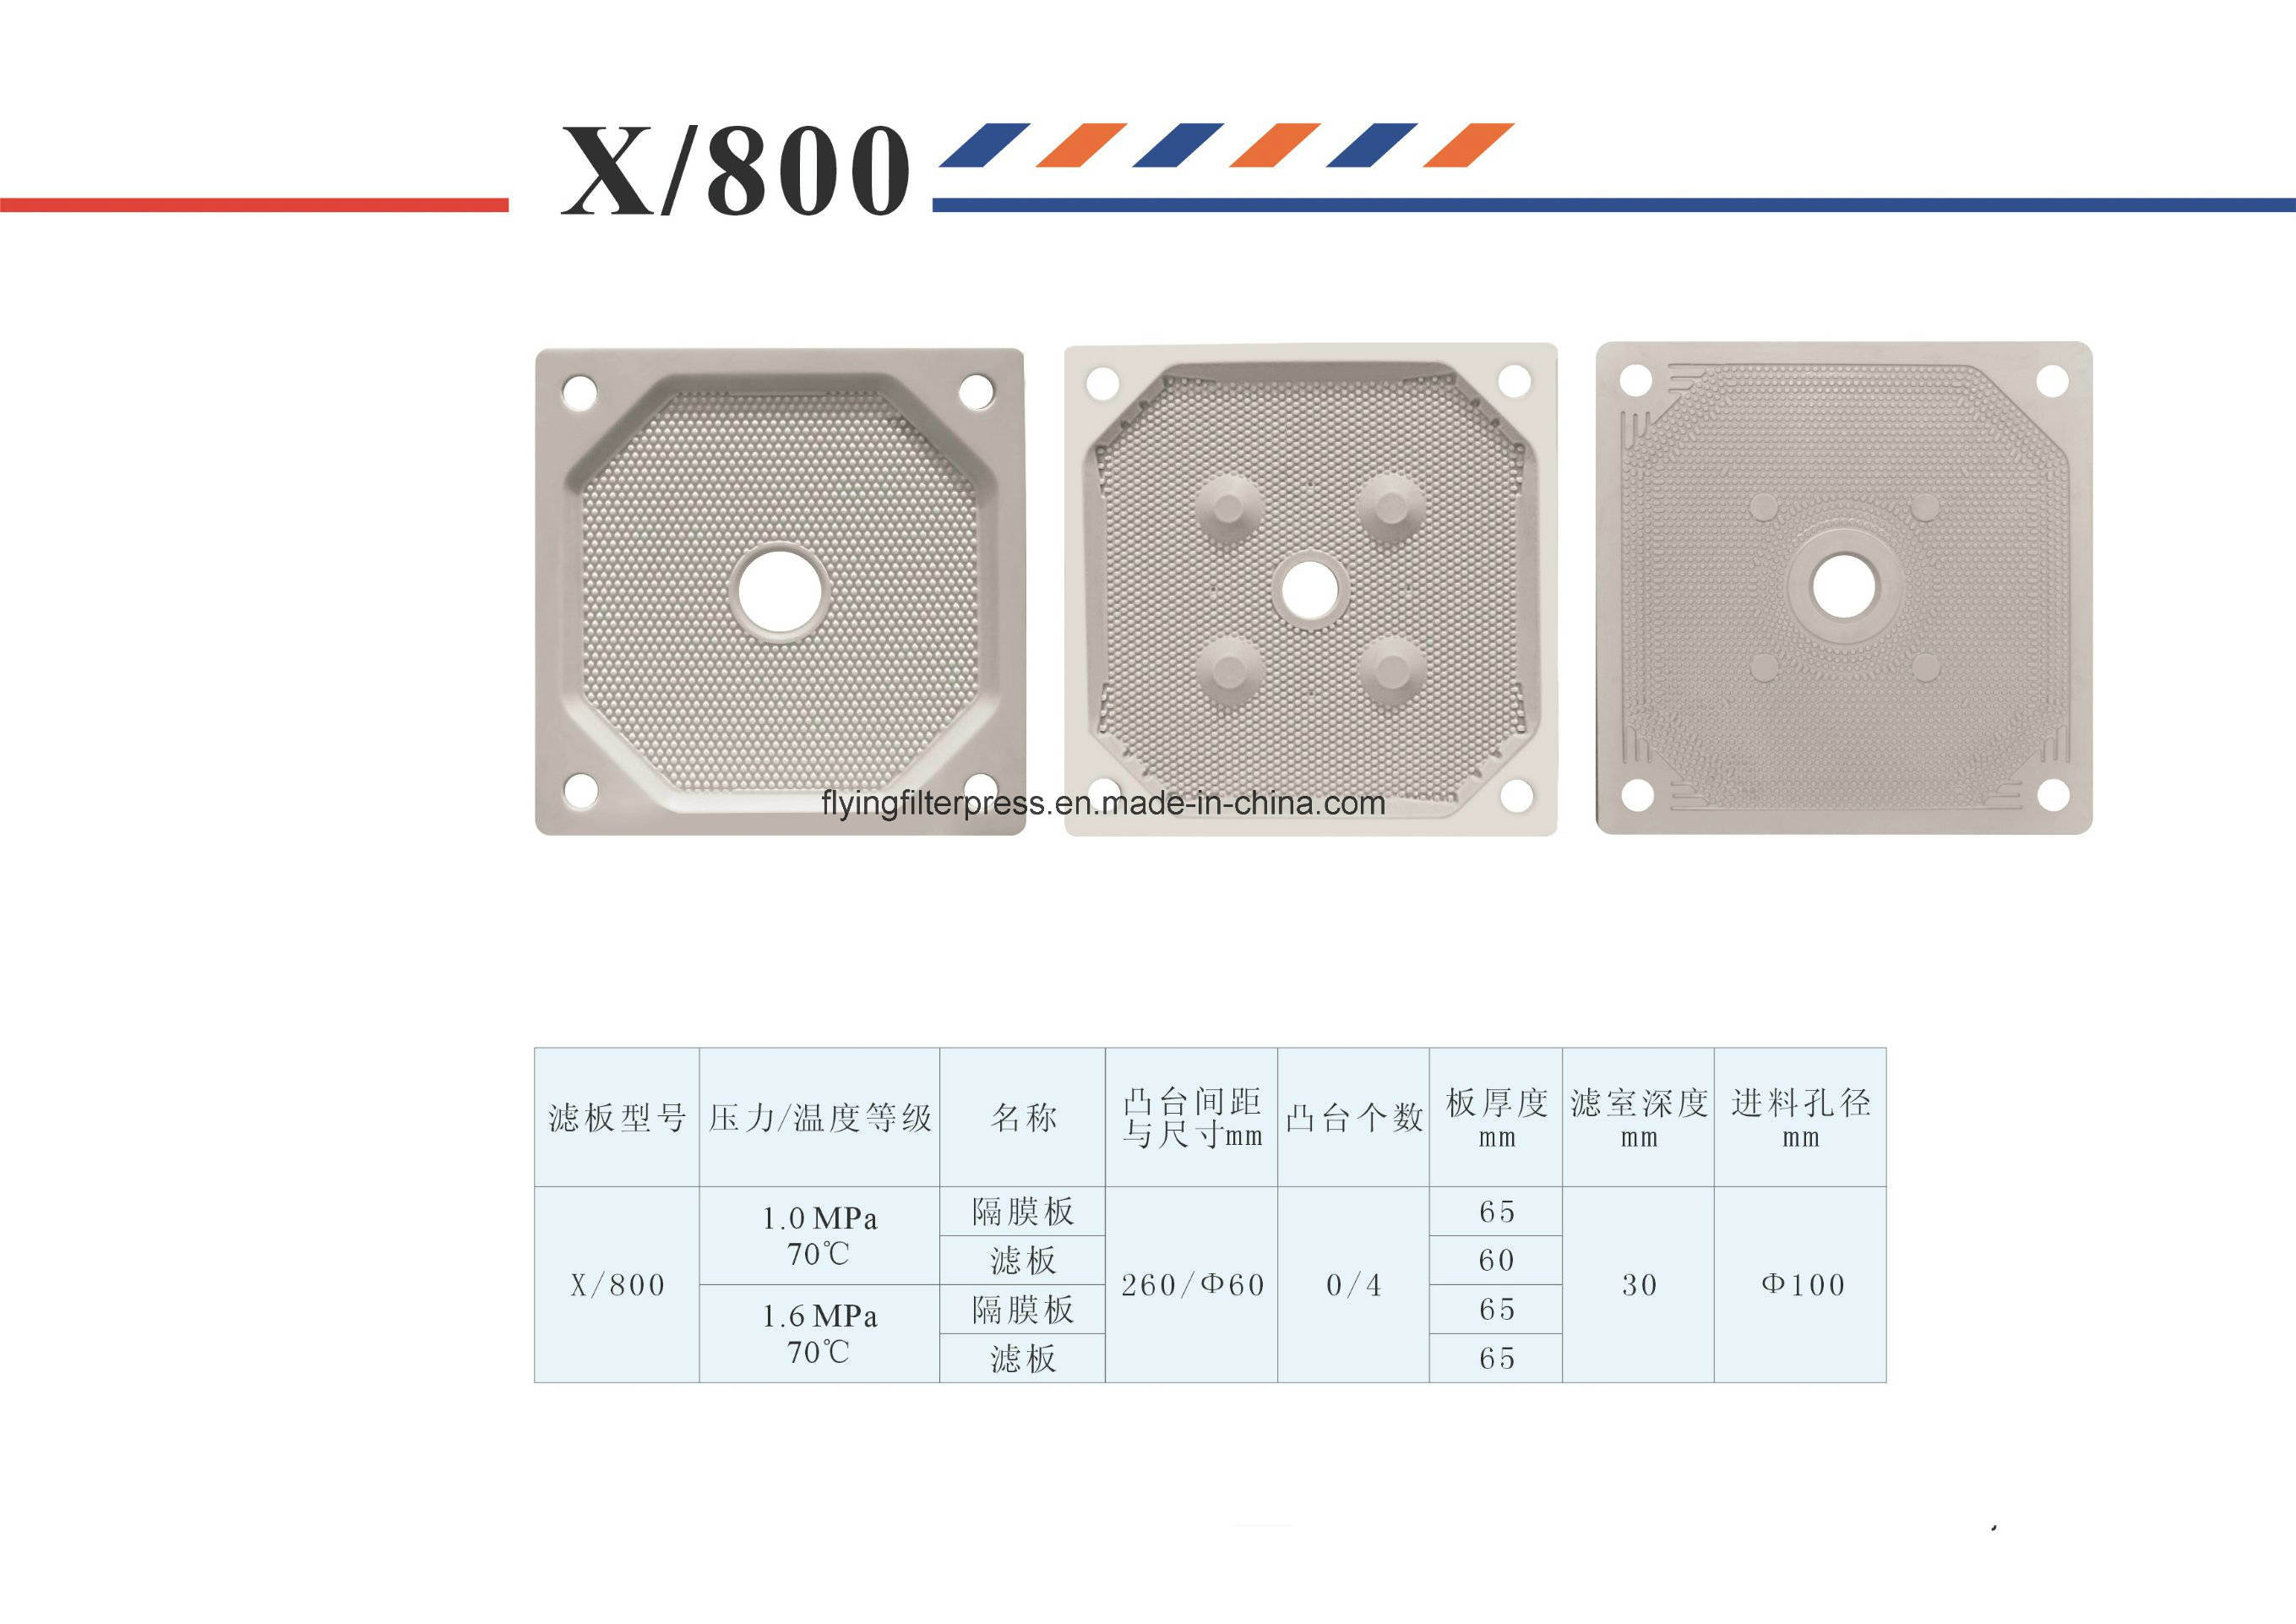 Higher Pressure PP Membrane Filter Plate Xg800